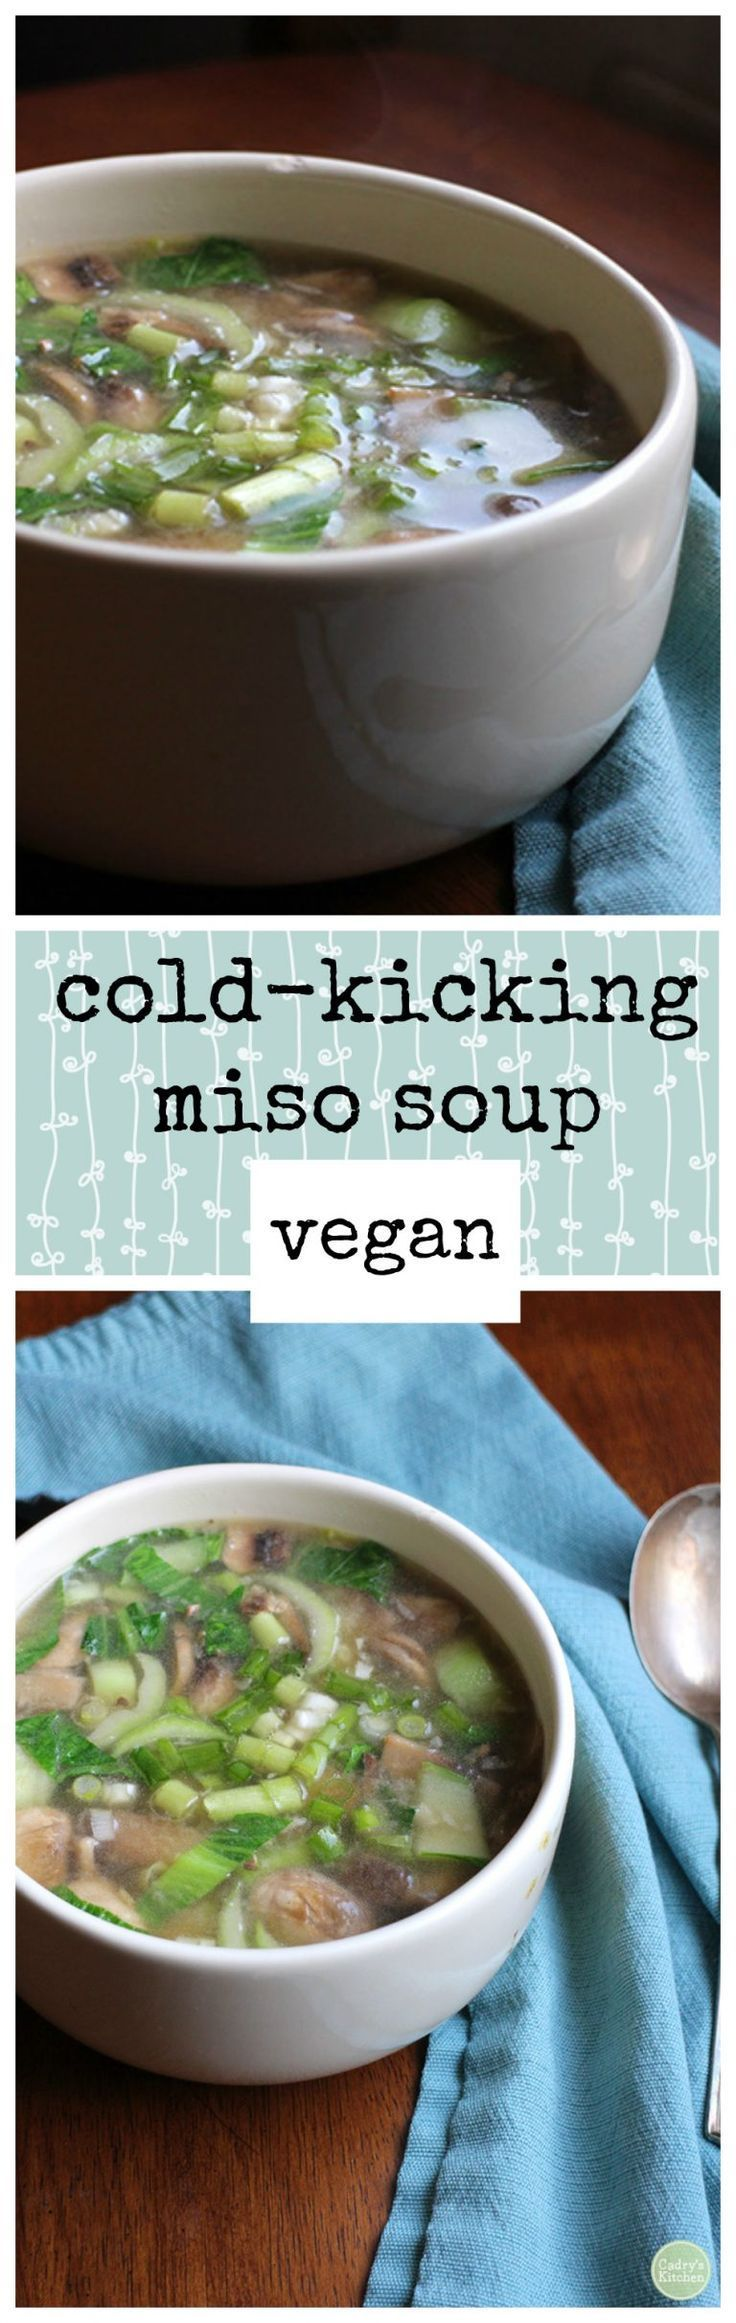 This cold-kicking miso soup is soothing to the throat and body. It's brimming with mushrooms, bok choy, and garlic. | cadryskitchen.com #vegan #soup #miso